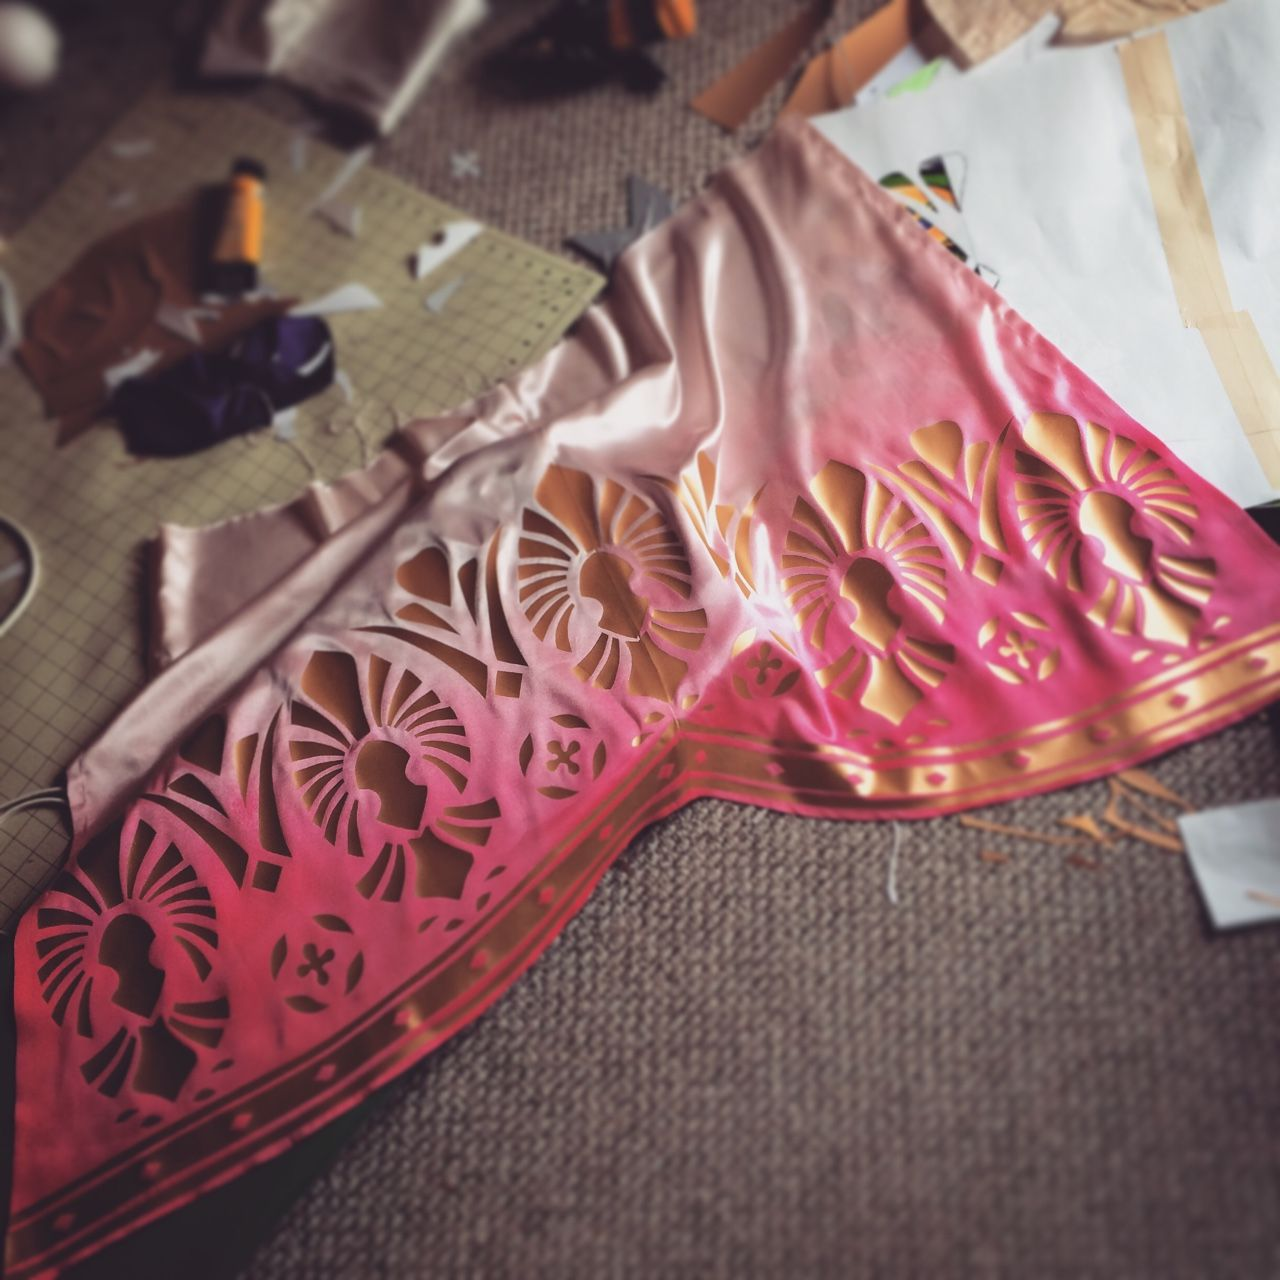 Use heat transfer vinyl to get great patterns on fabric | Cosplay ...